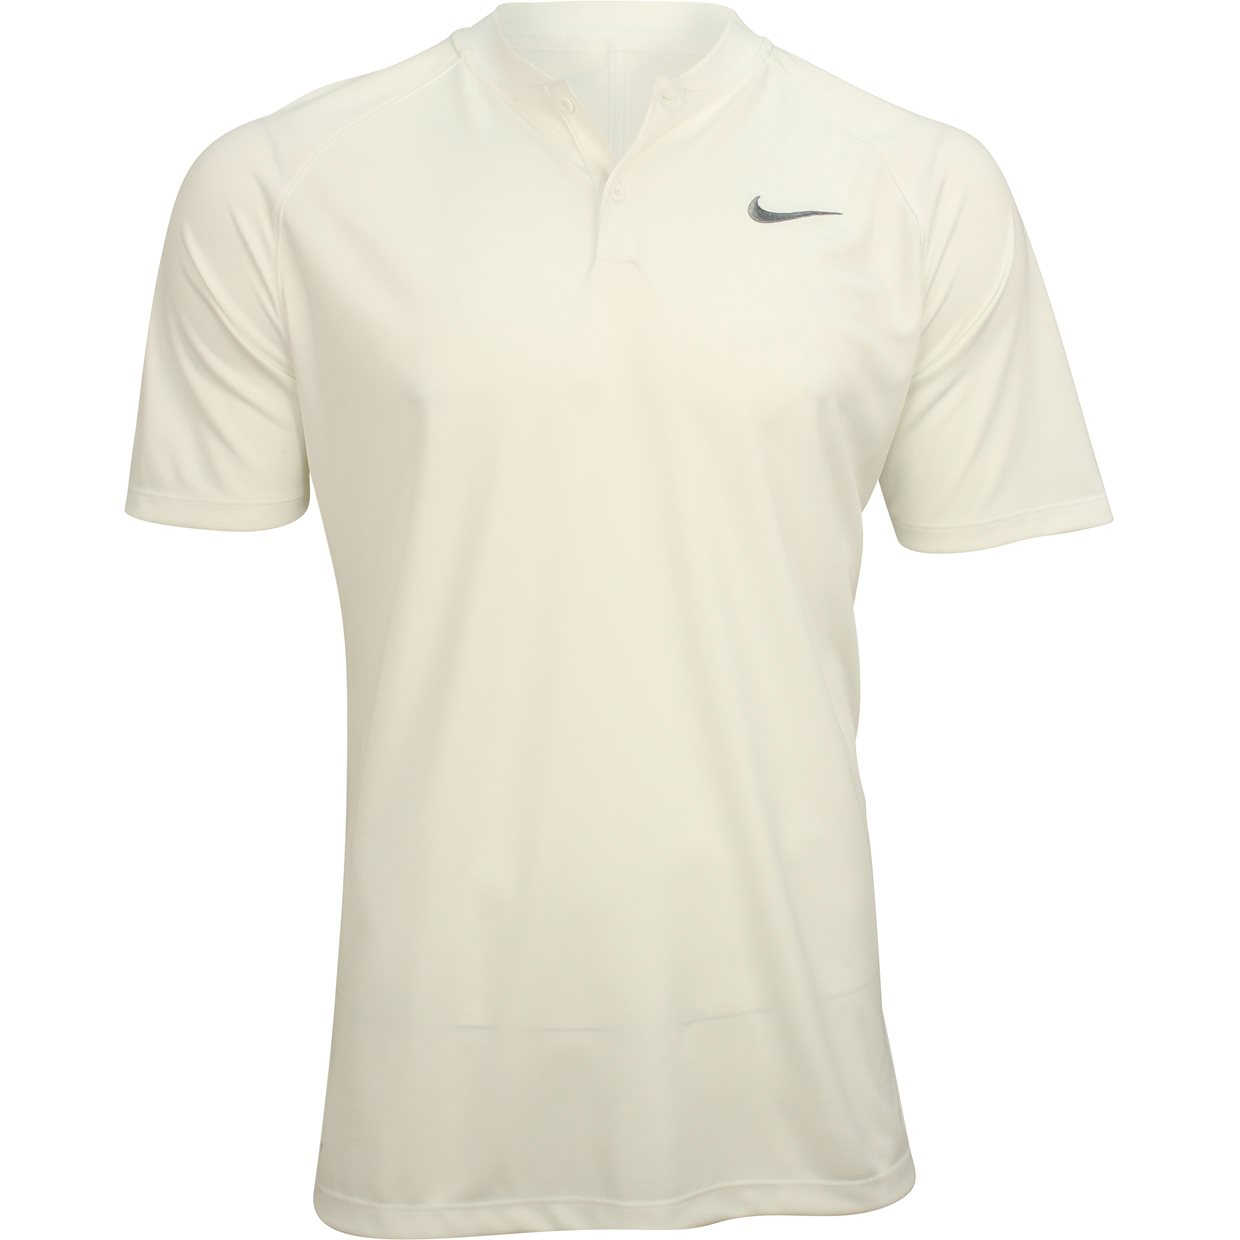 c90dc672b Nike Dri-Fit II Momentum Shirt Apparel at GlobalGolf.com